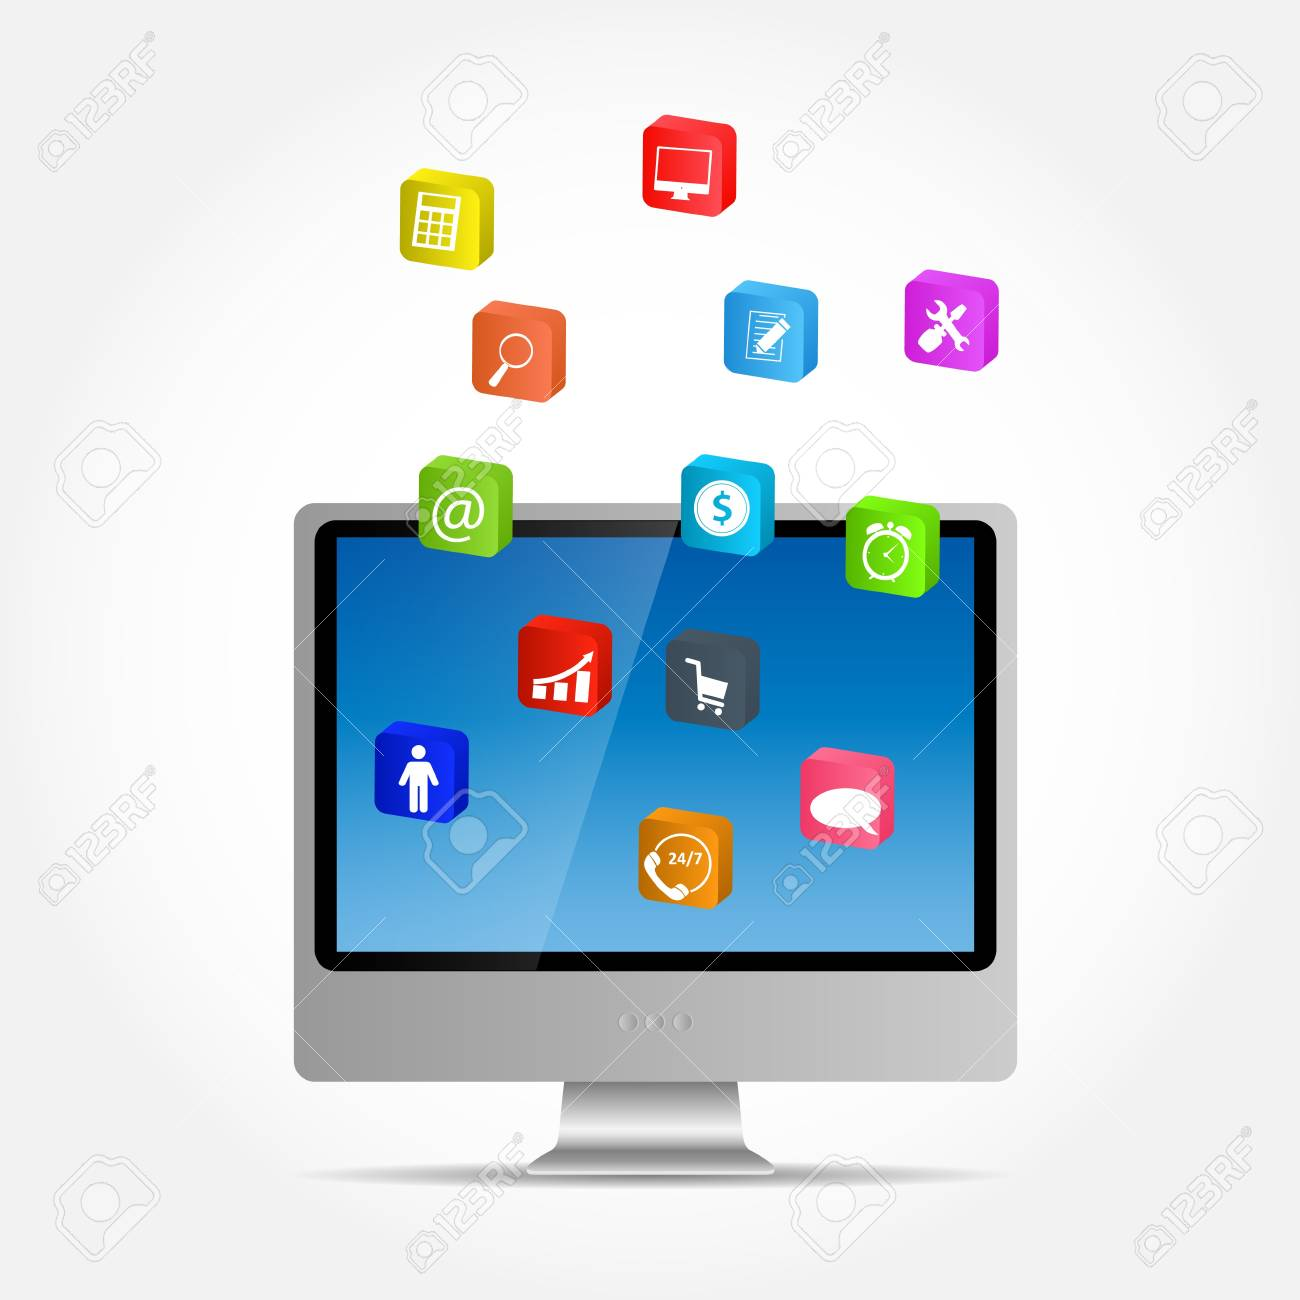 Computer with icons illustration Stock Vector - 21318231